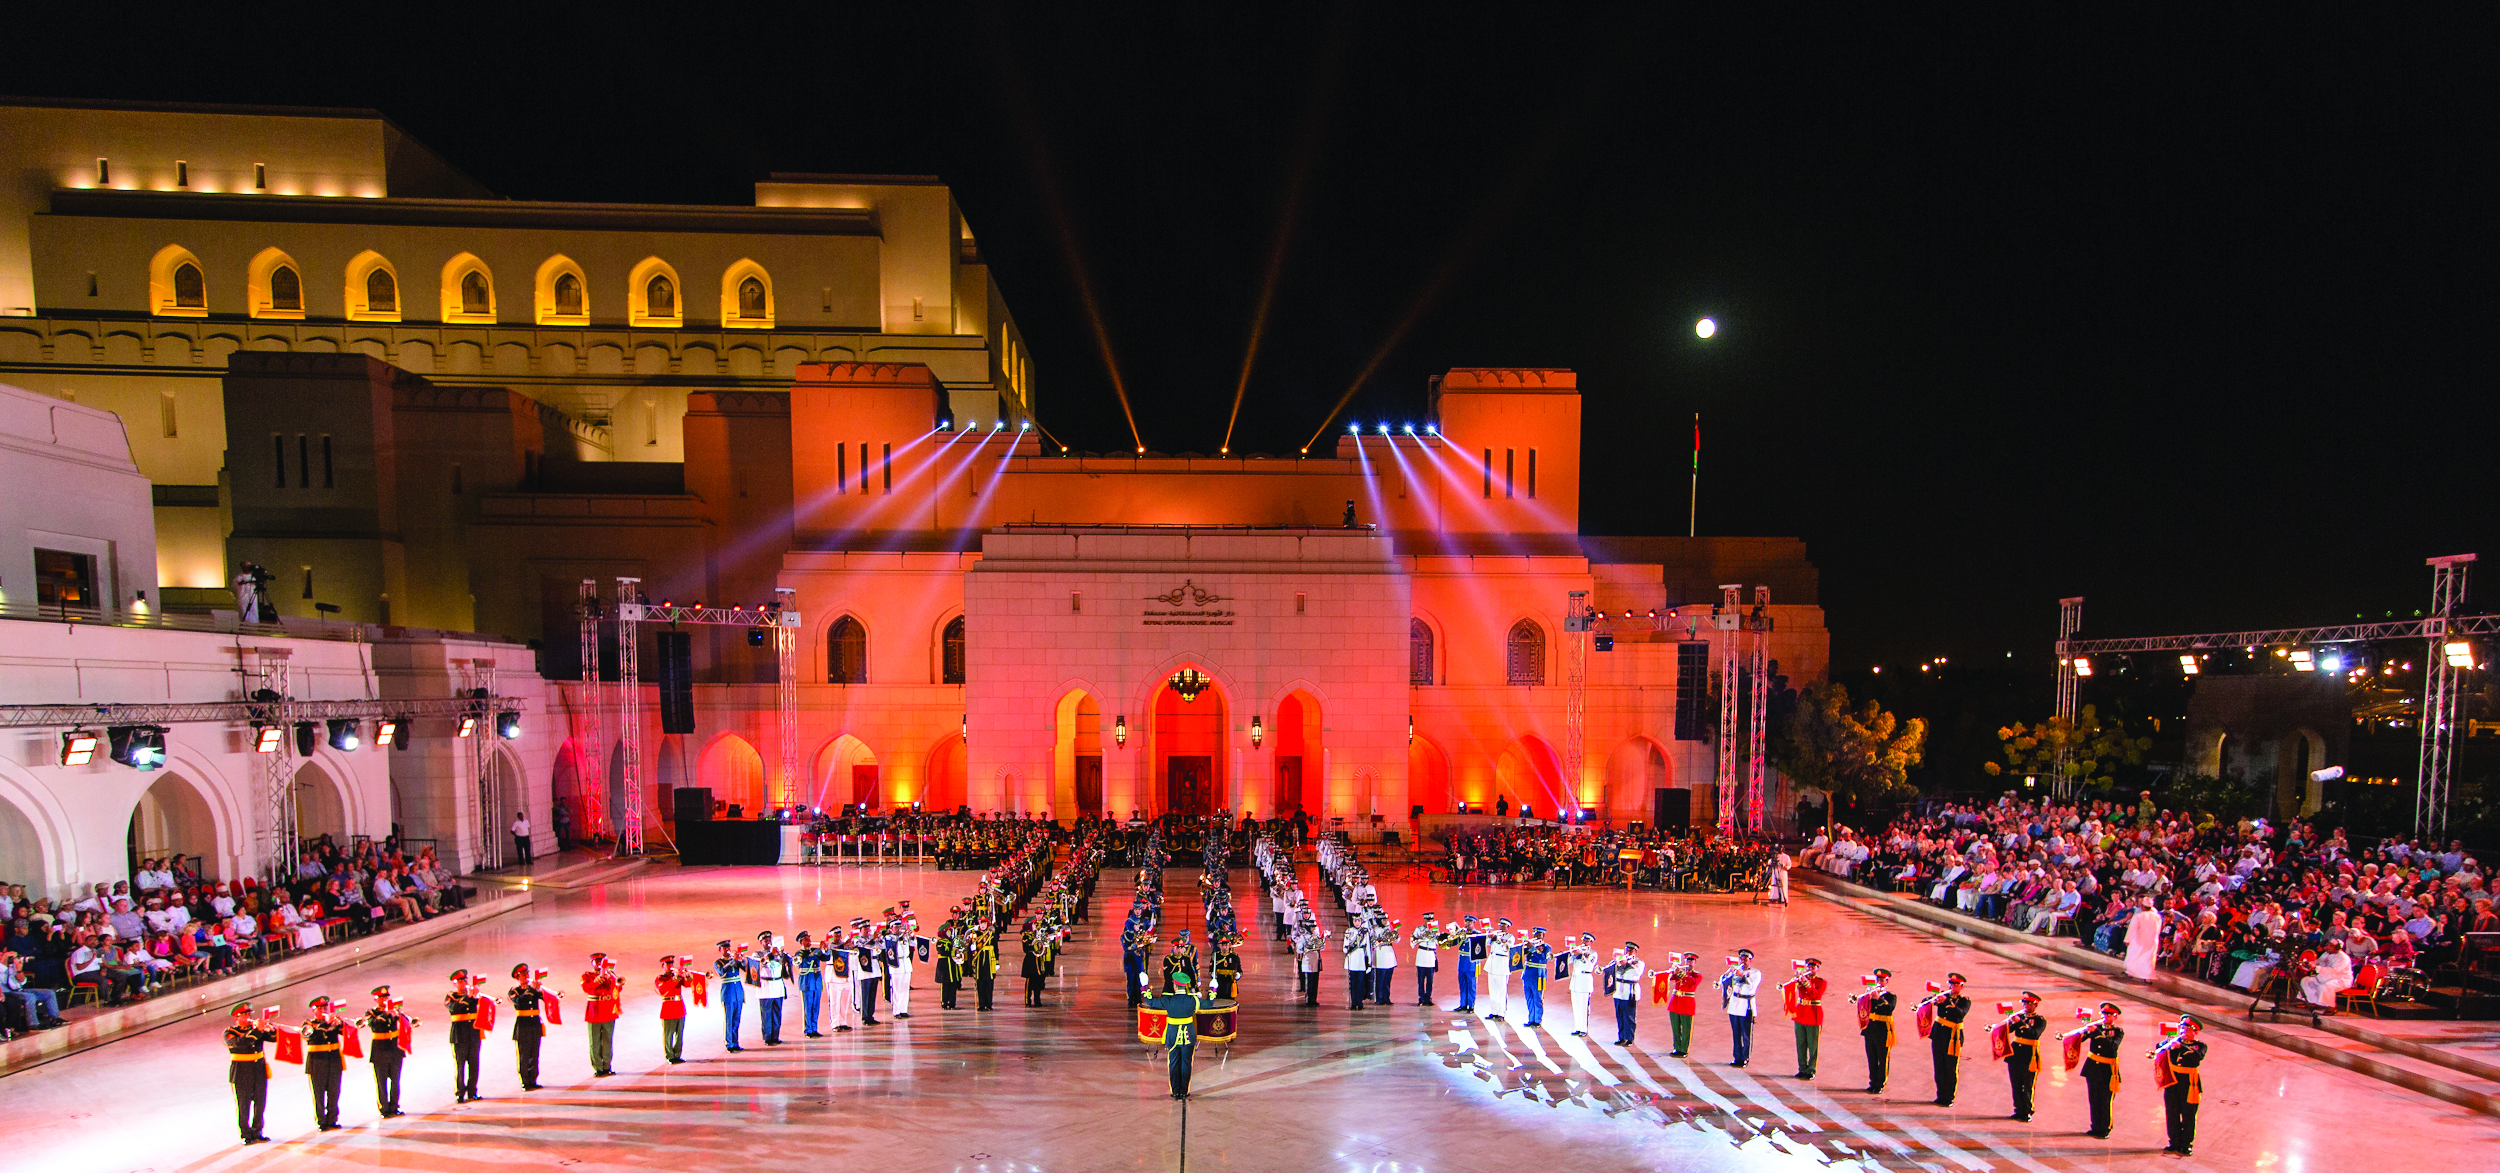 Oman Culture: A November to remember at the Royal Opera House Muscat